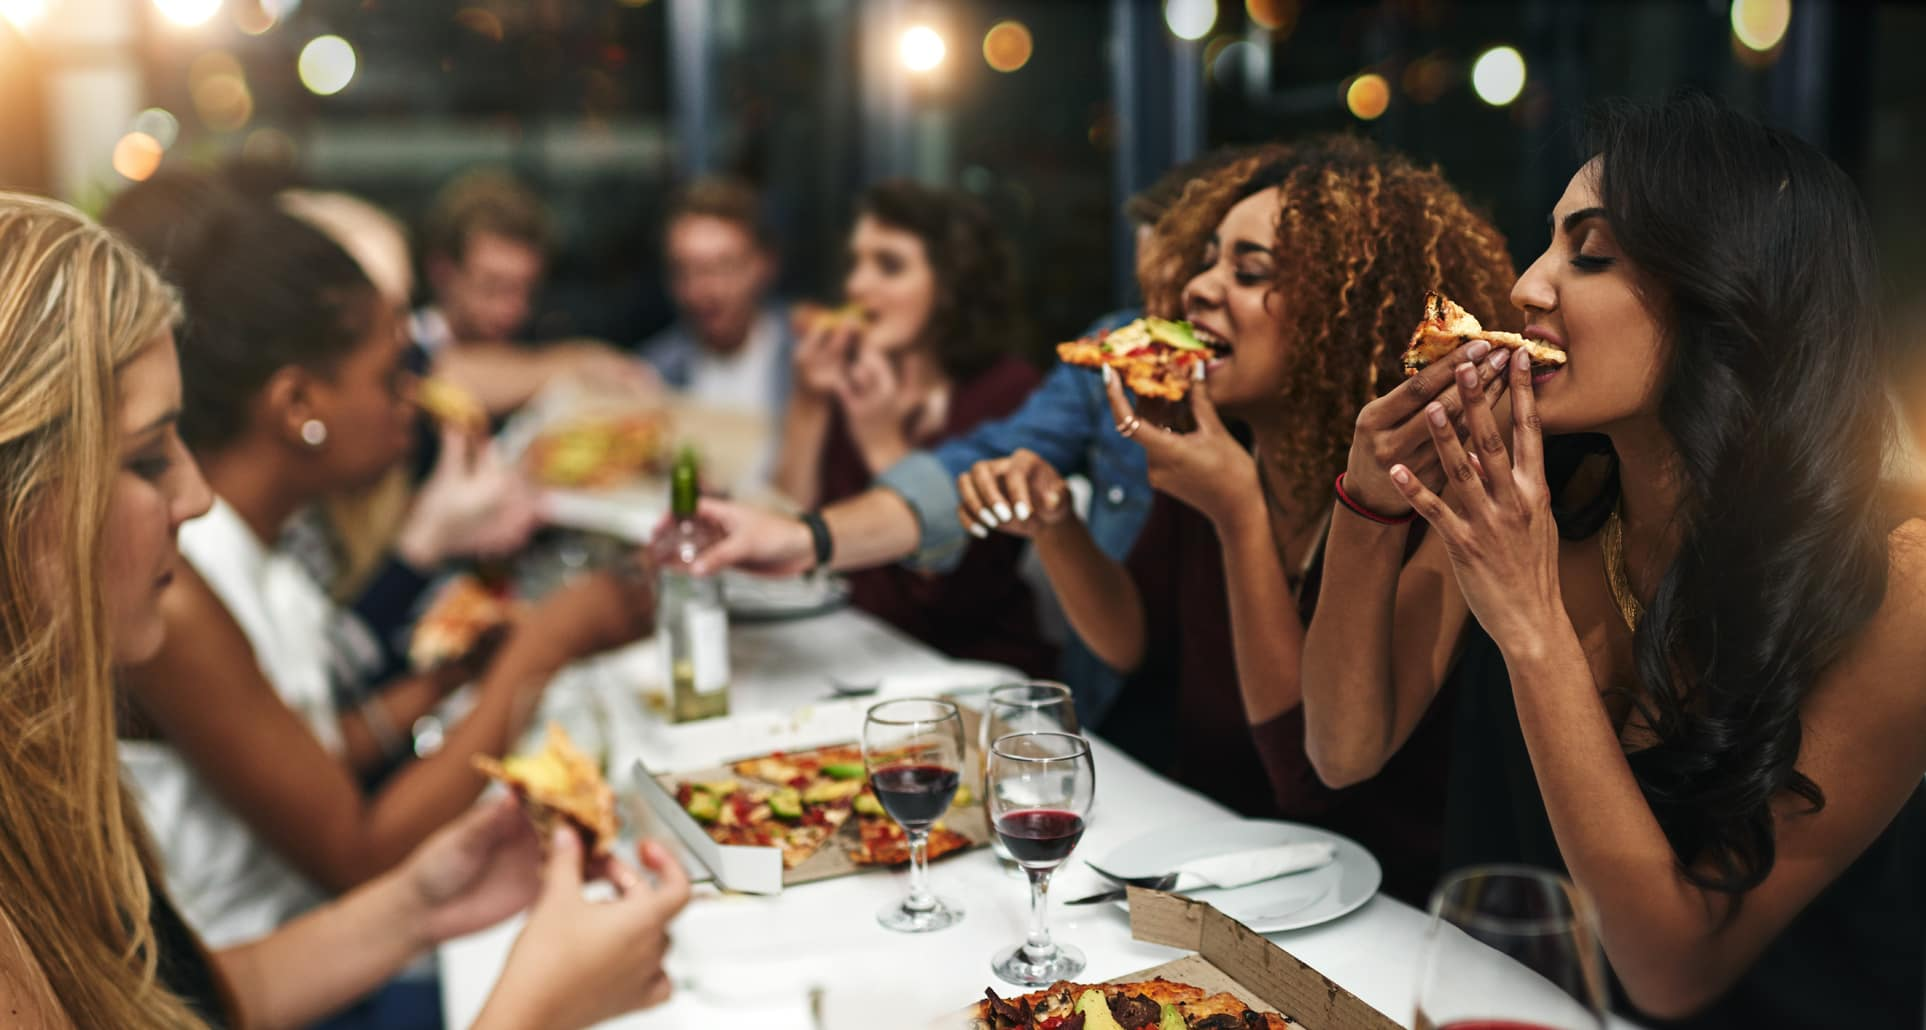 group-of-friends-eating-pizza-and-drinking-wine.jpg